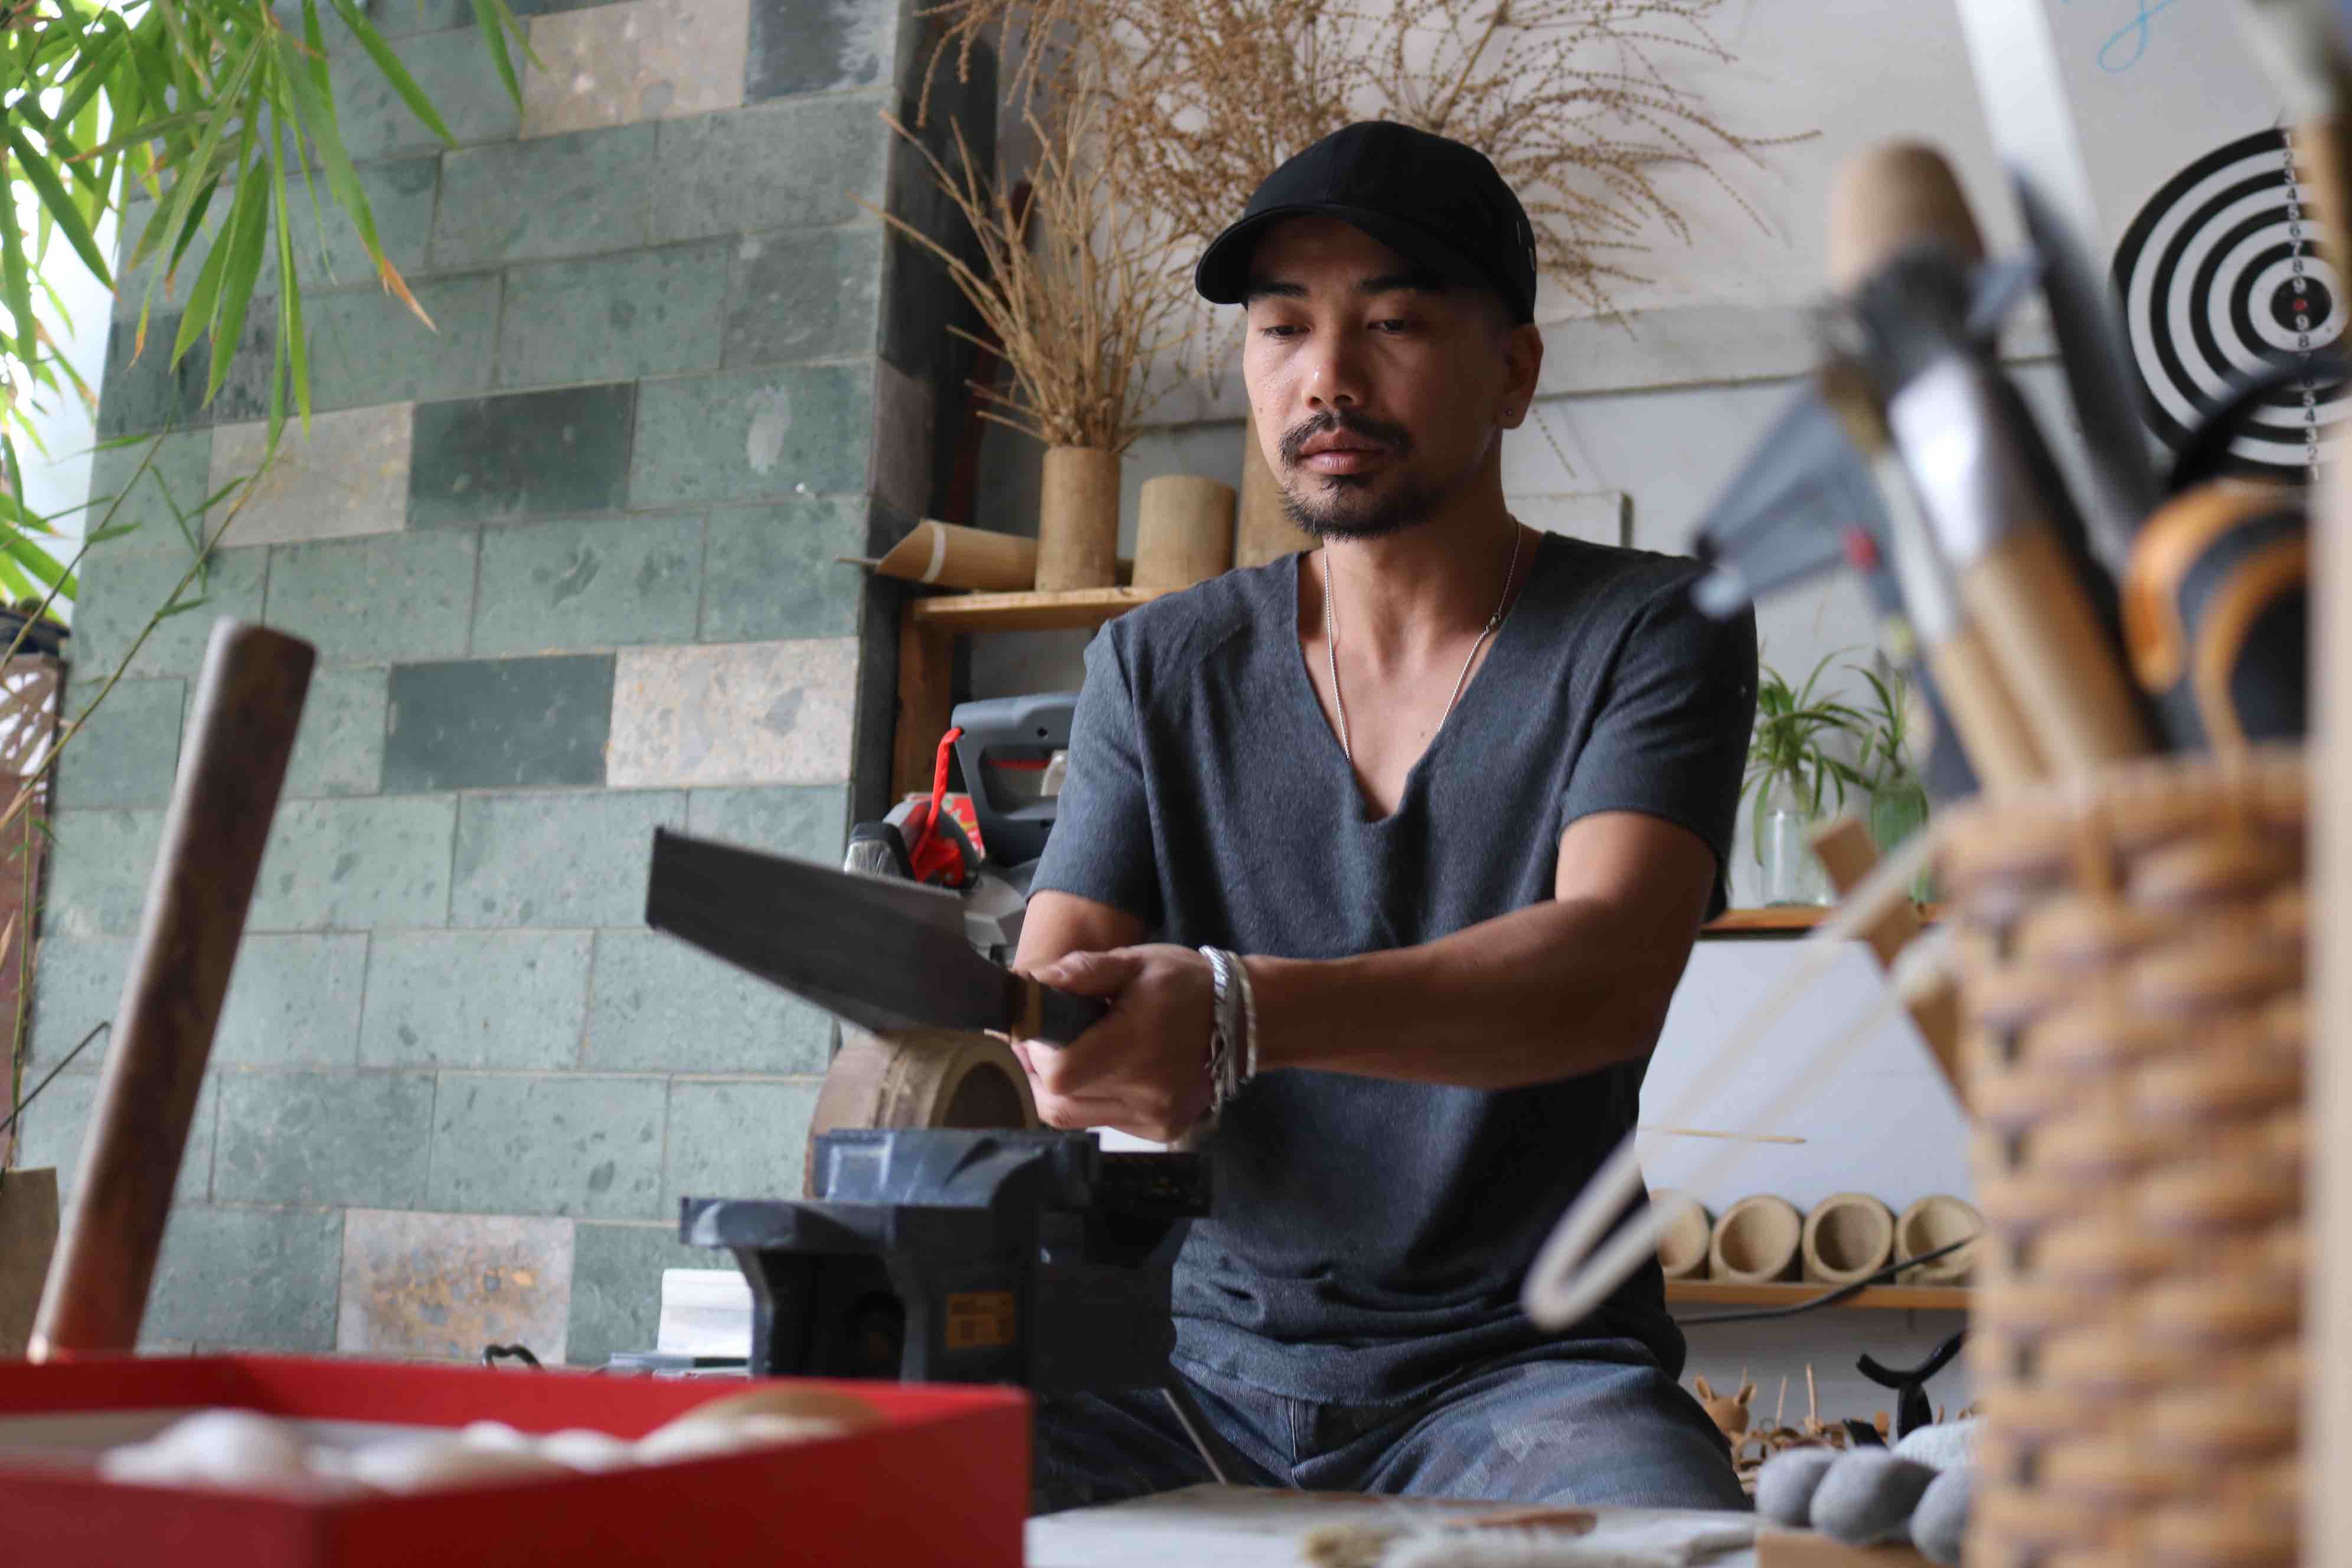 Nguyen Manh Cuong shows off his bamboo carving talentat his workshop in District 10, Ho Chi Minh City. Photo: Hoang An / Tuoi Tre